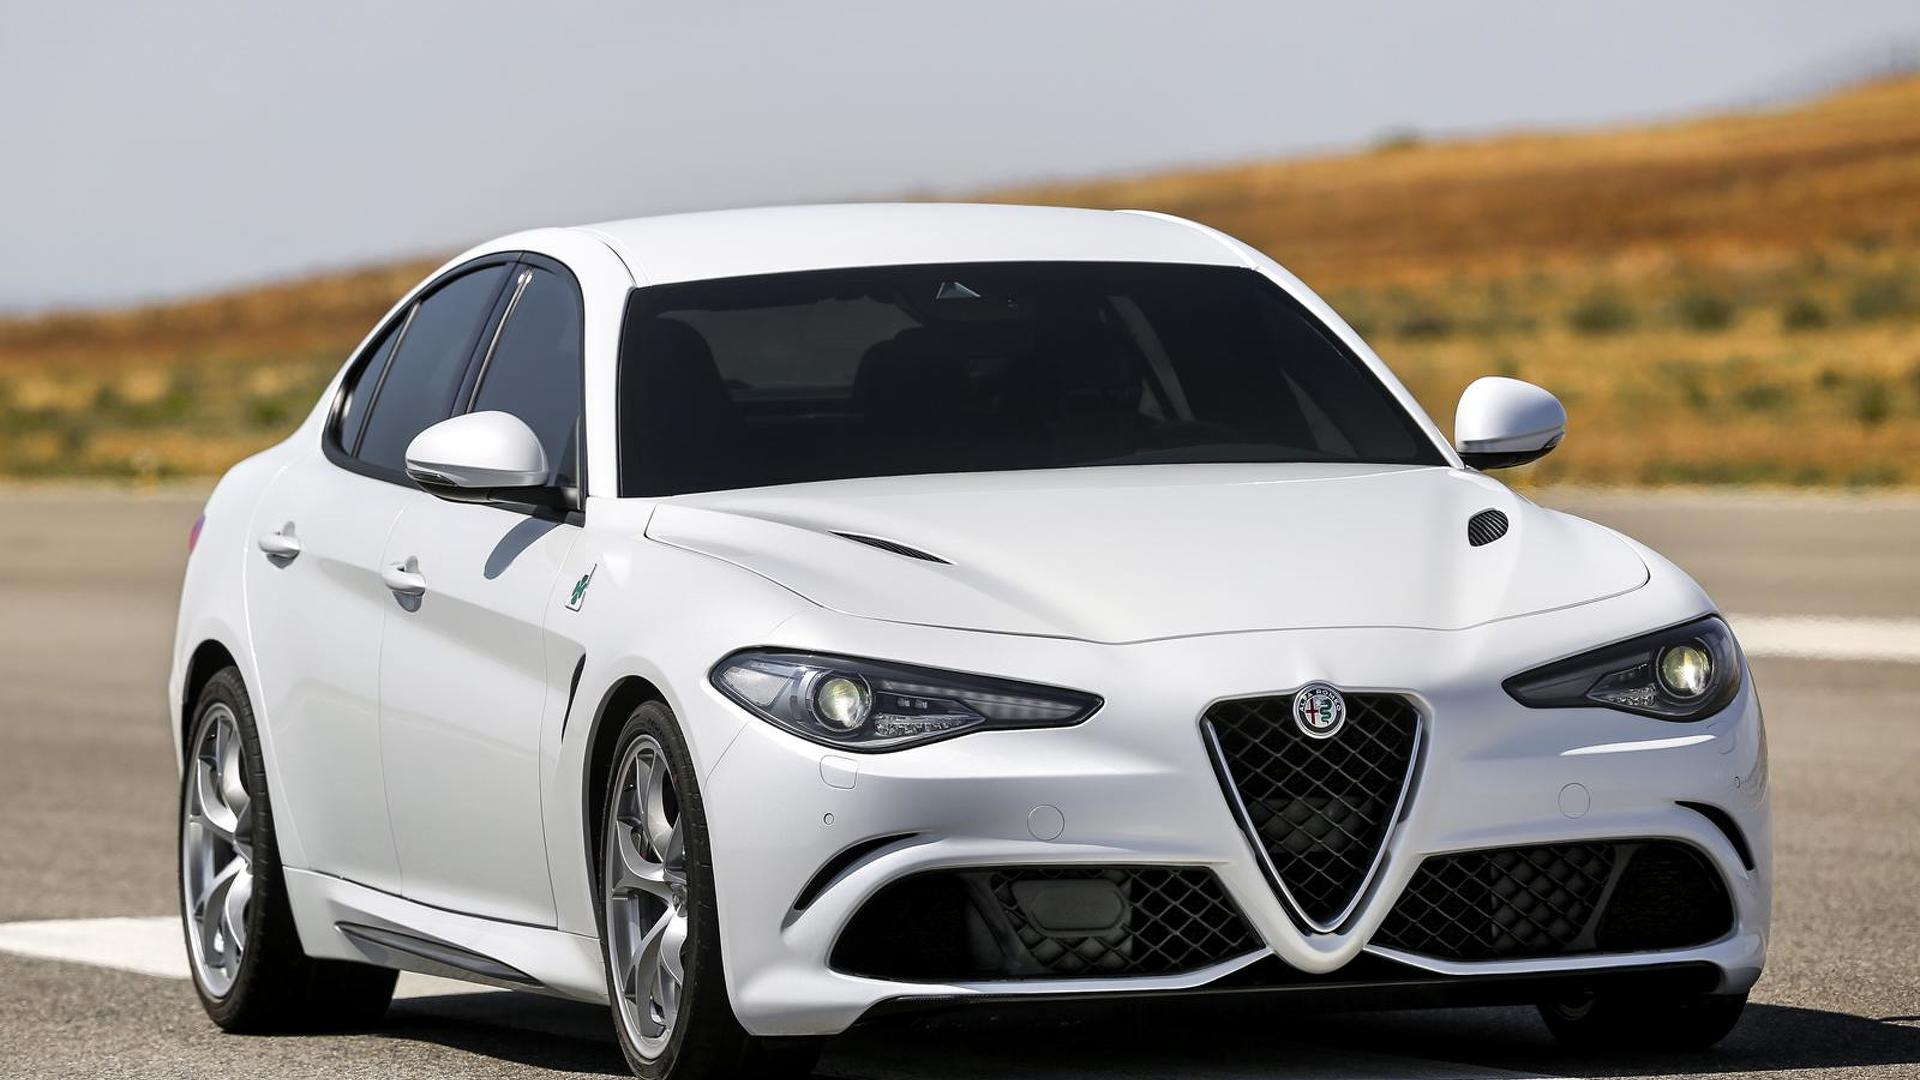 Alfa Romeo Says Giulia Design Was Inspired By The 156 Not The Rival Bmw 3 Series